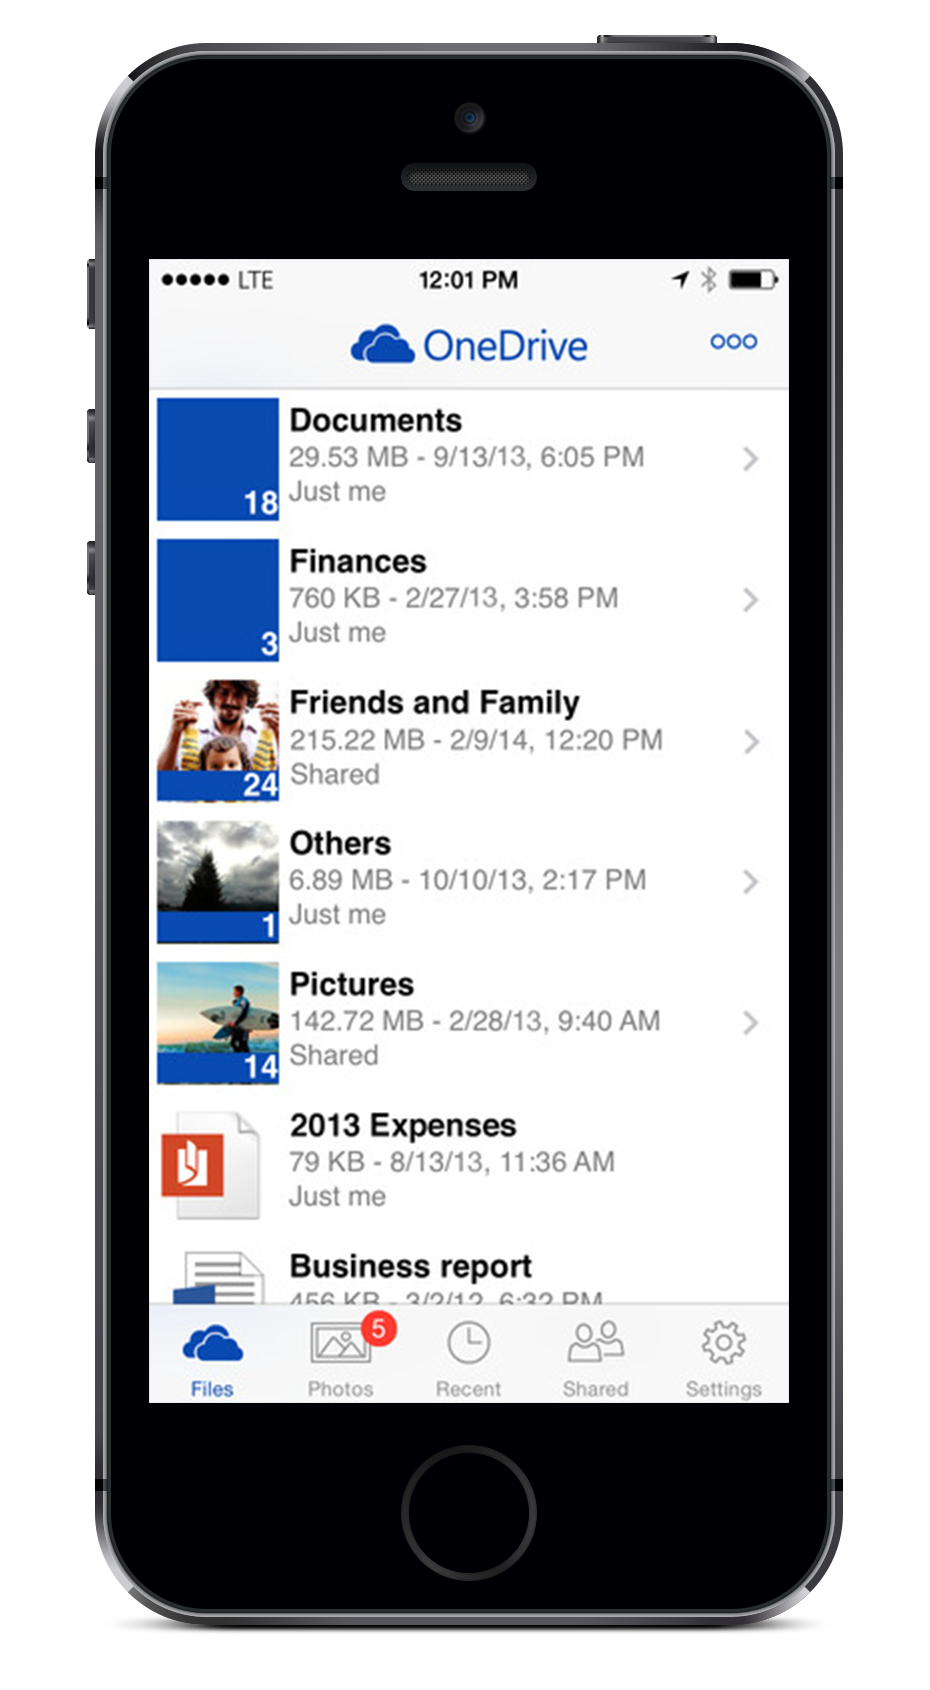 Now Get 30GB of Free Storage with OneDrive – For Limited